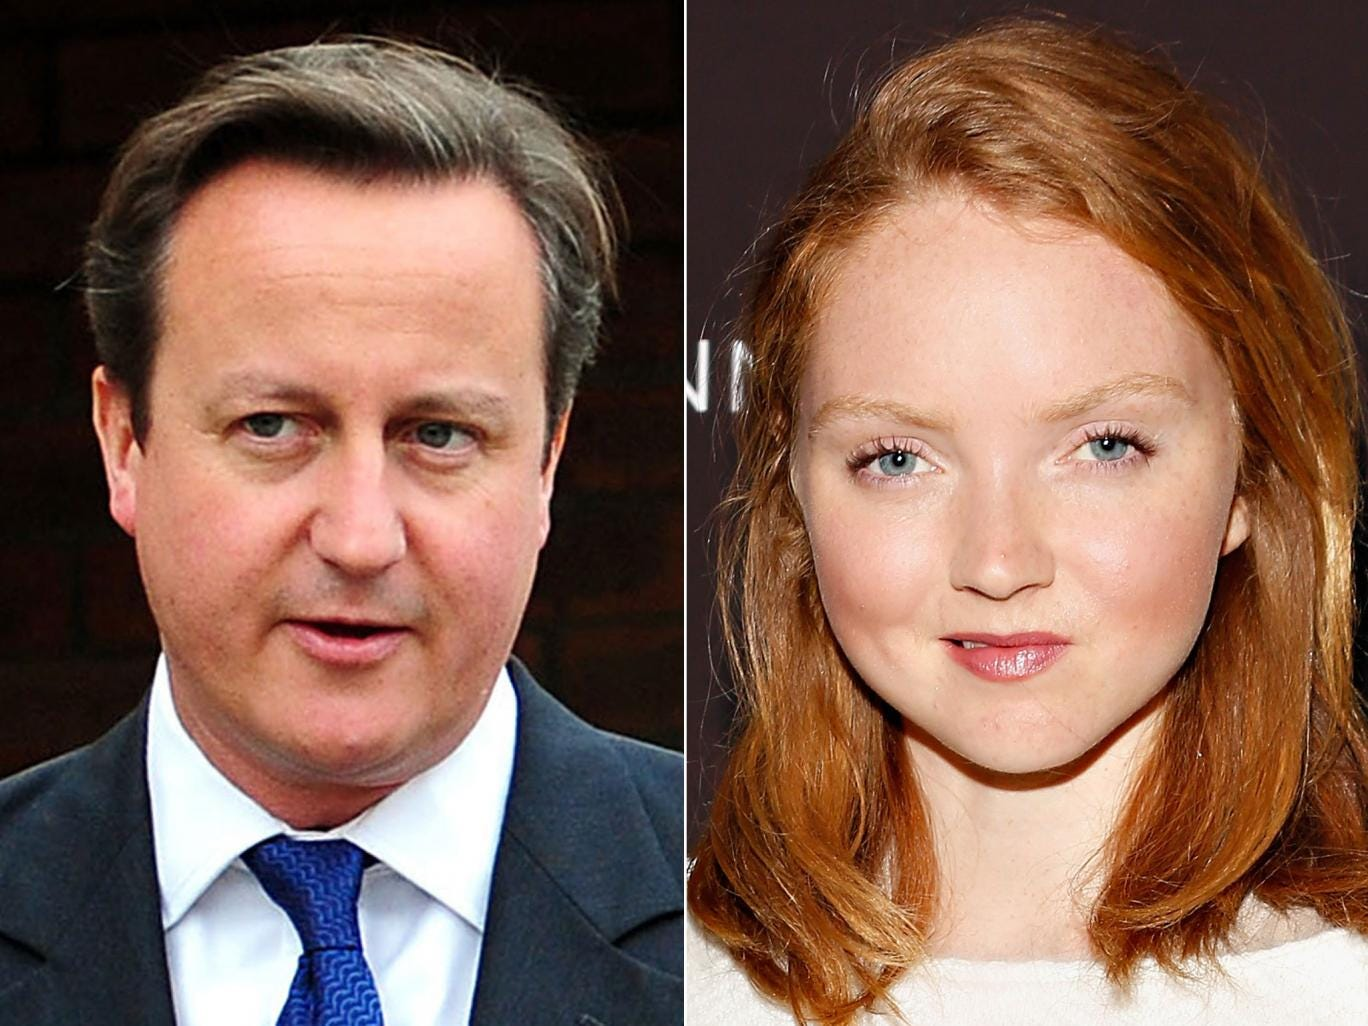 Speakers will include Prime Minister David Cameron and supermodel Lily Cole